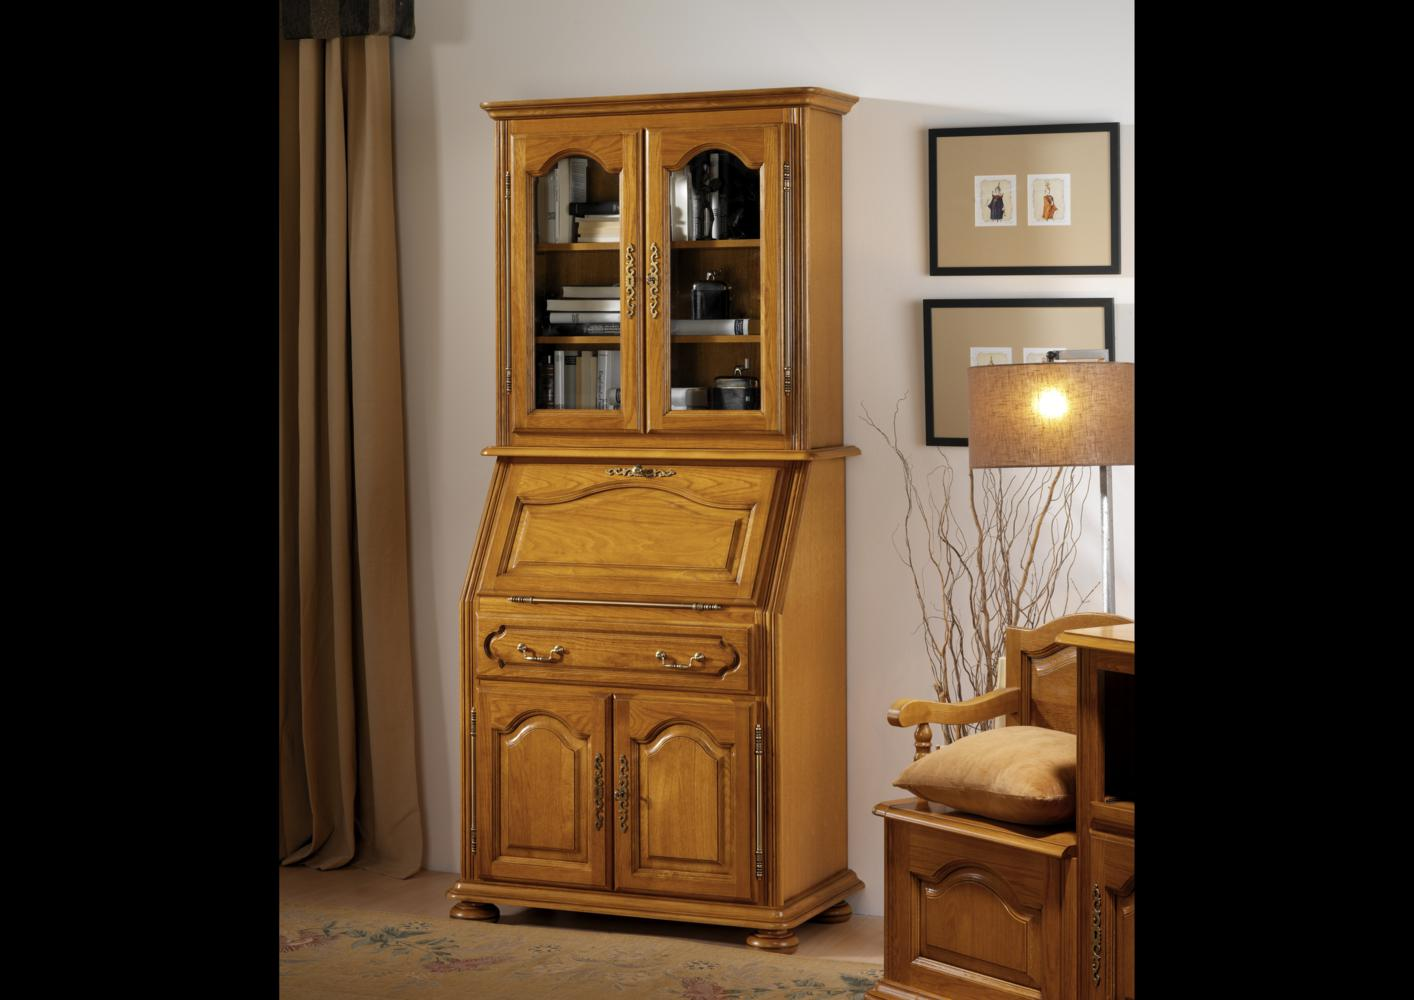 acheter votre meuble secr taire avec option haut biblioth que chez simeuble. Black Bedroom Furniture Sets. Home Design Ideas